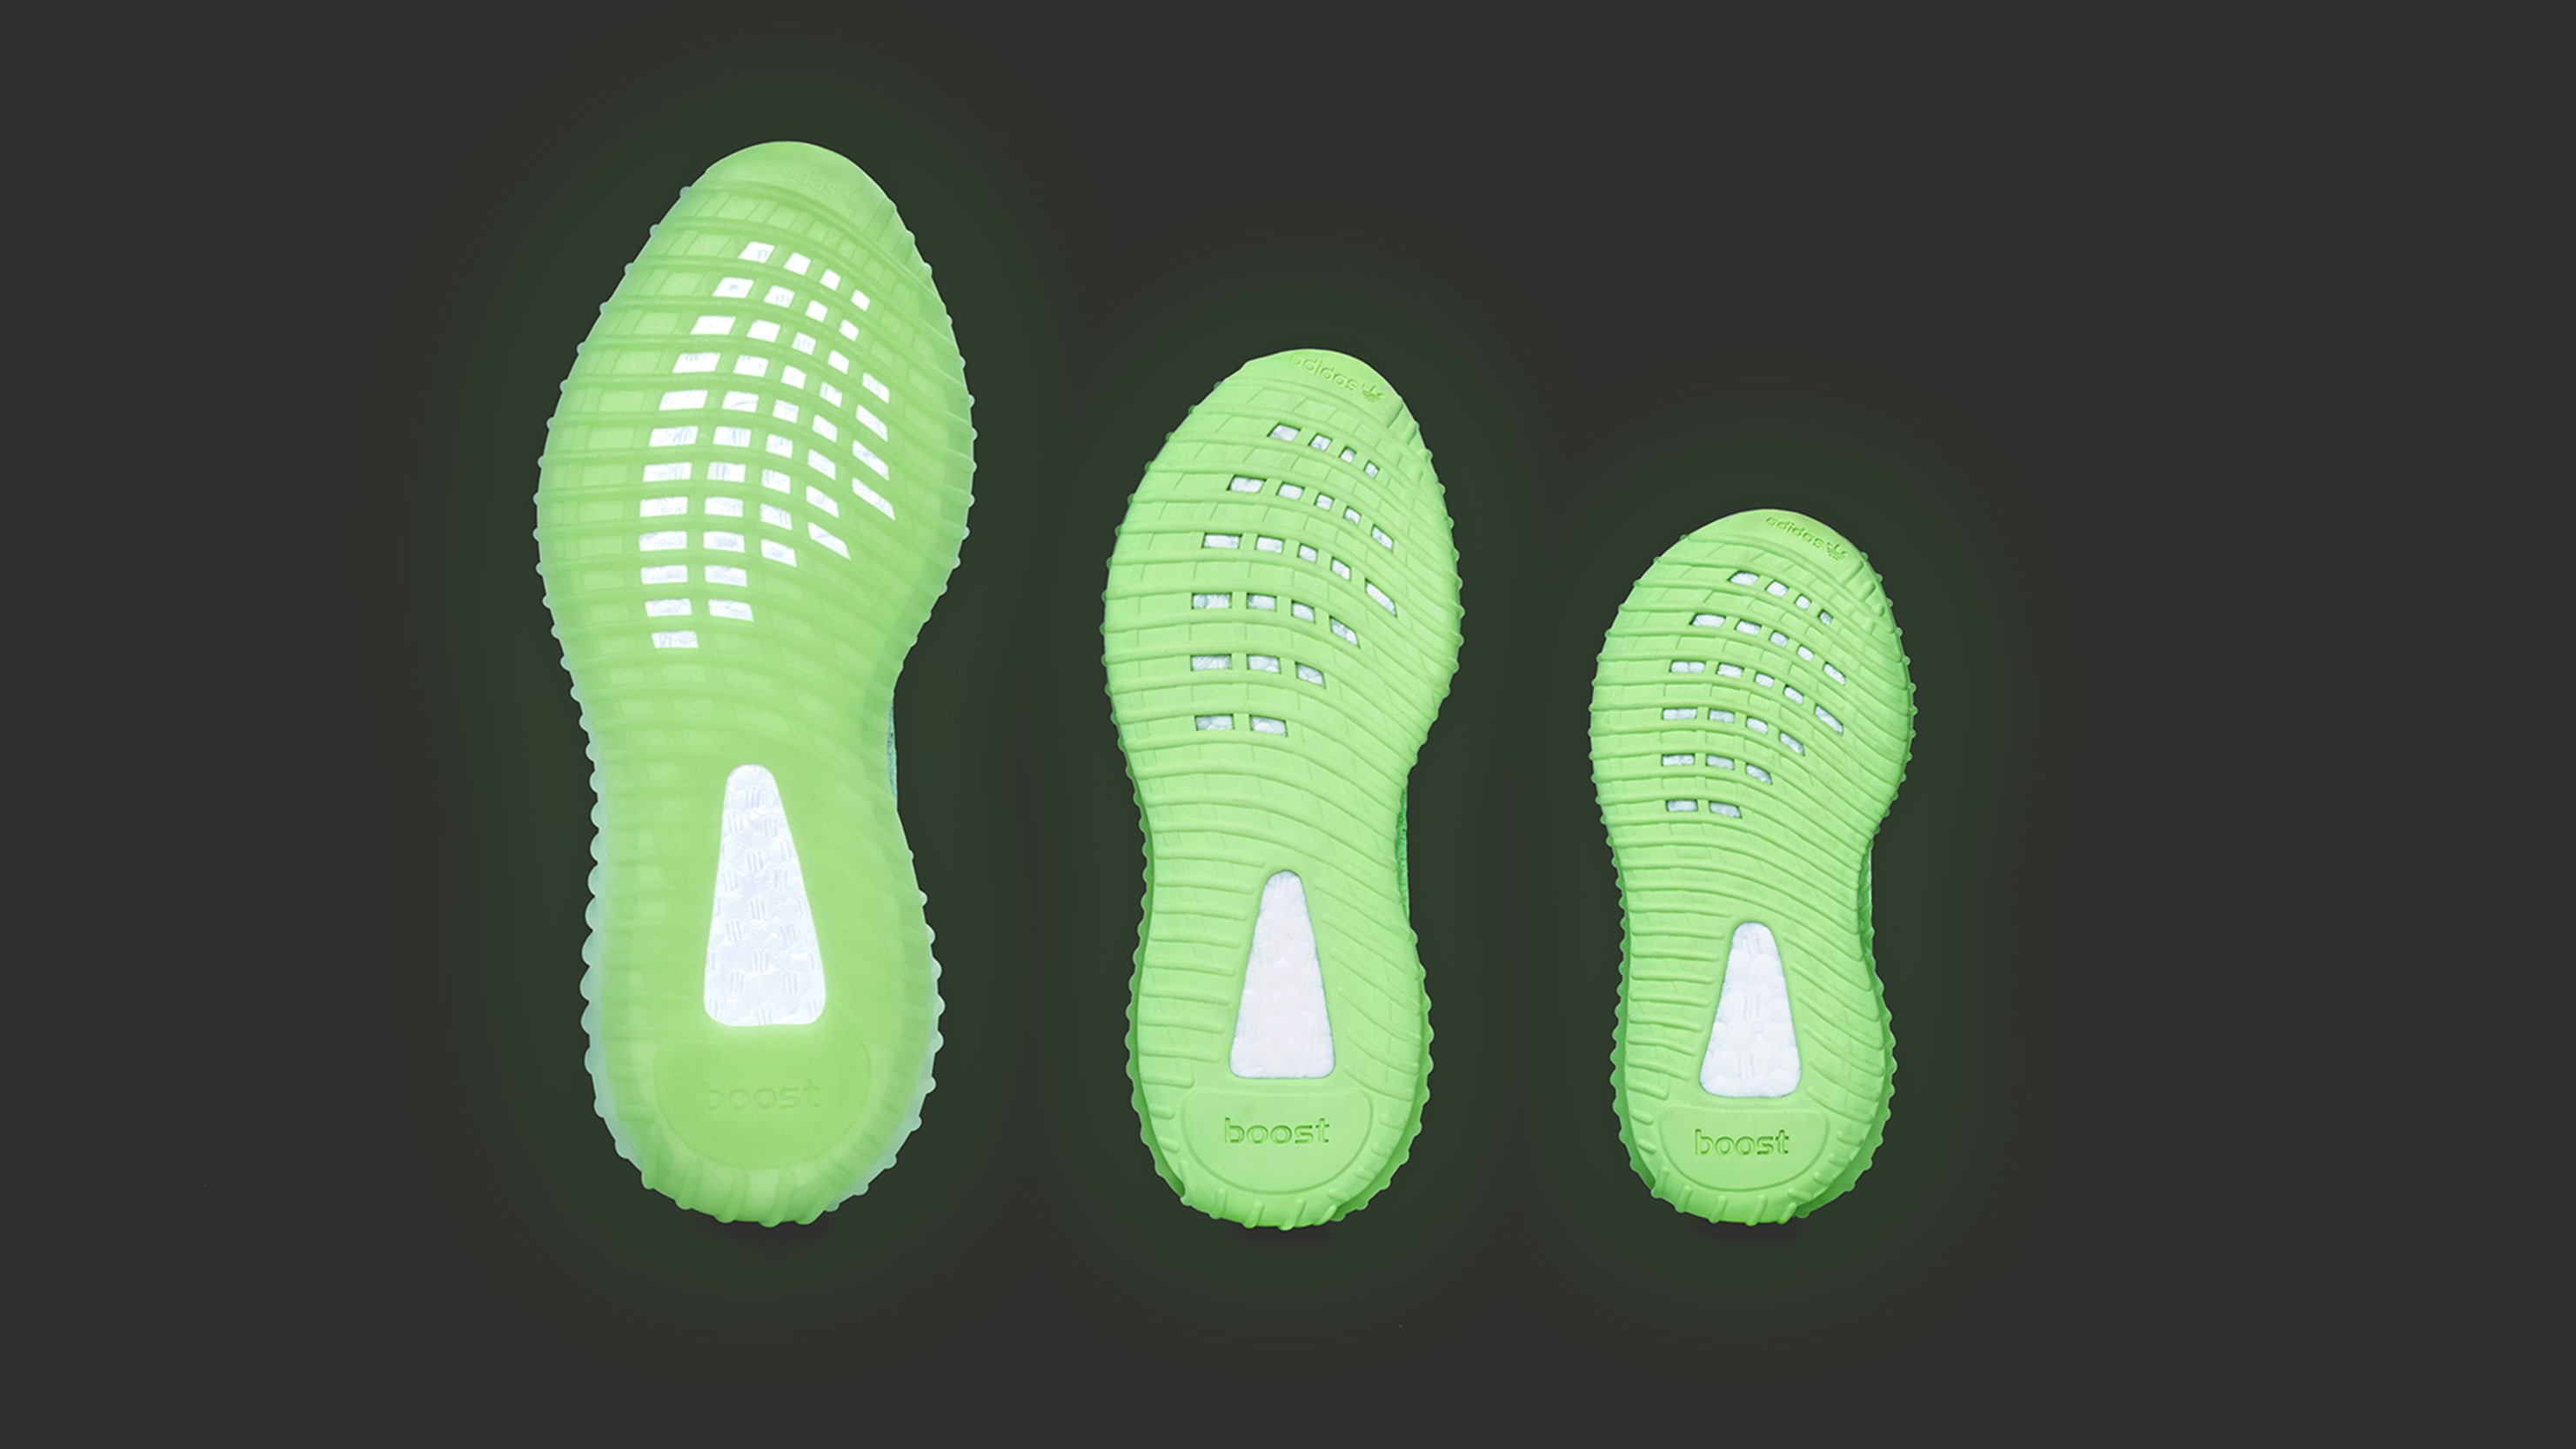 Adidas Yeezy Boost 350 V2 'Glow' PR300 (Bottom)